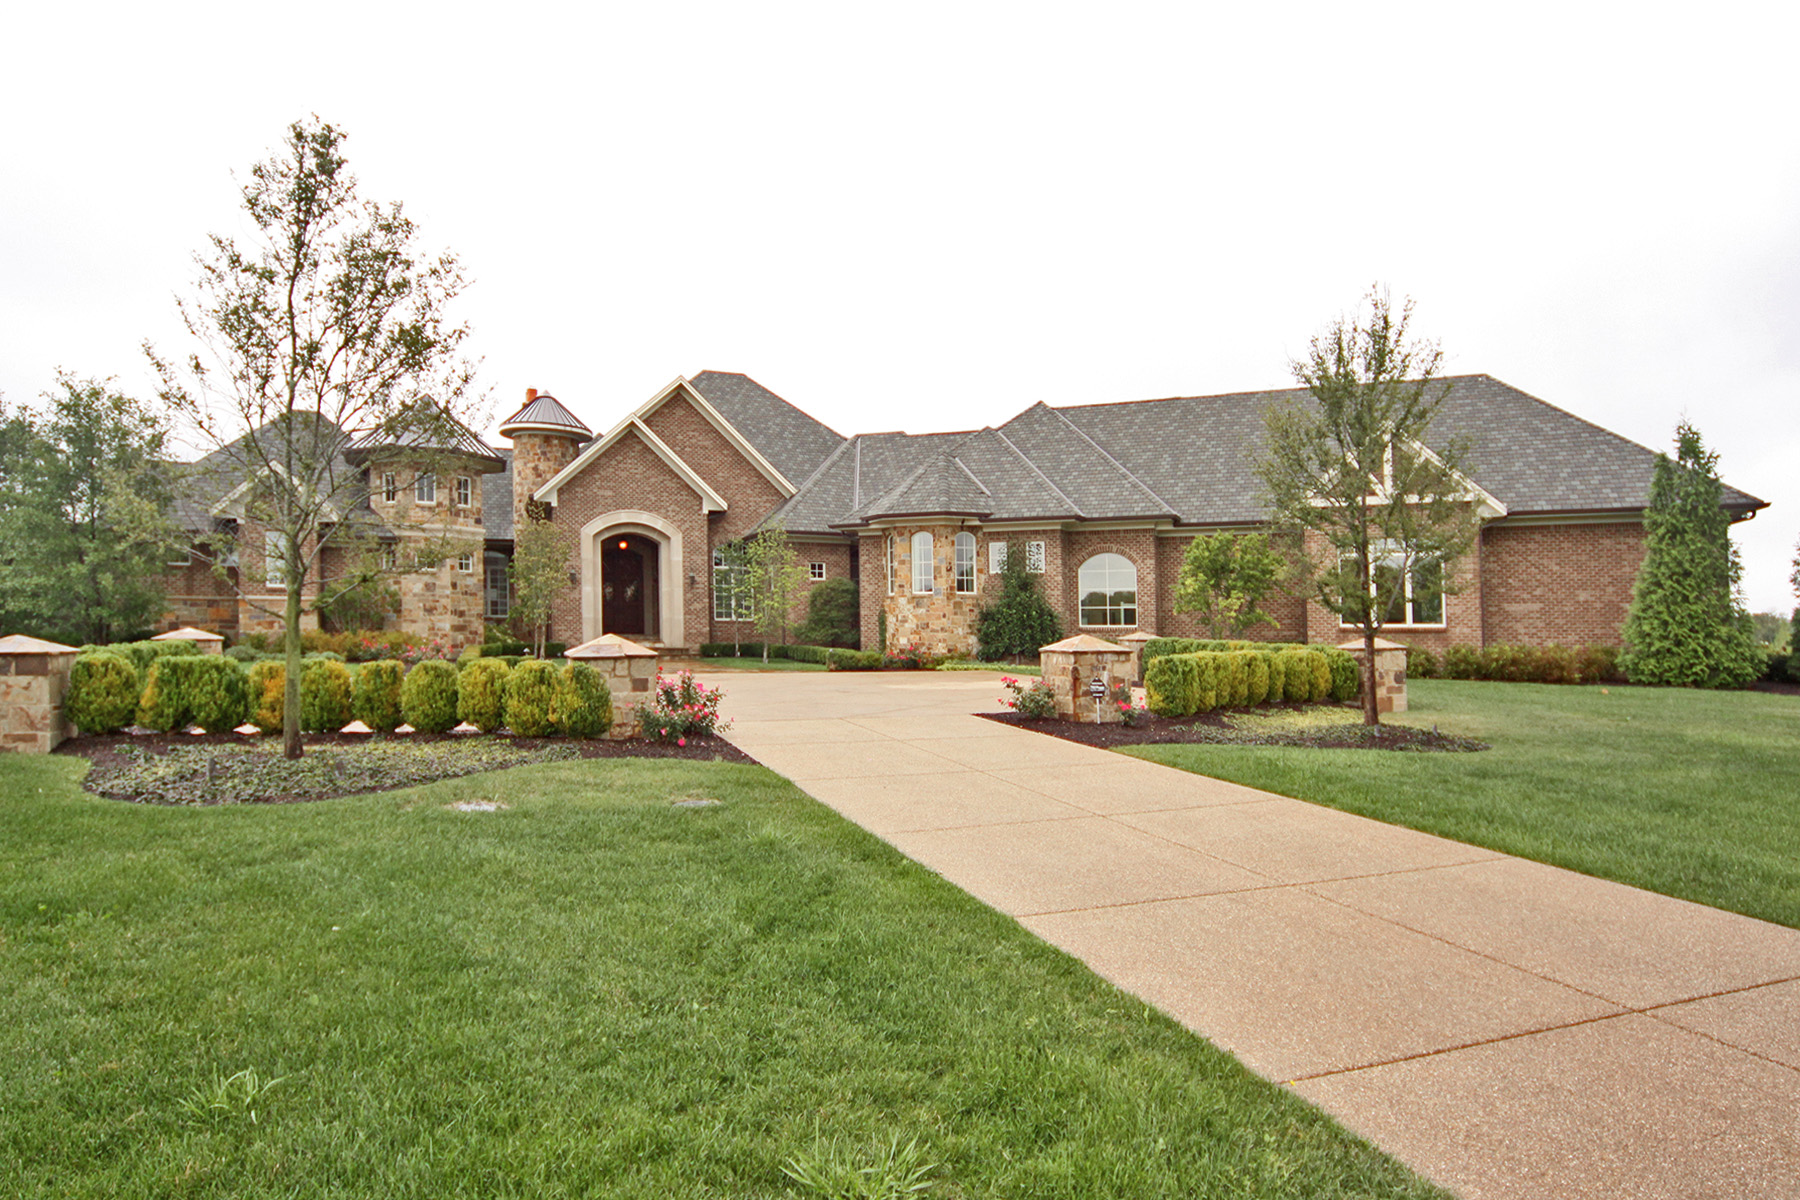 10455 Laurel Ridge Ln, Carmel, Indiana 46032